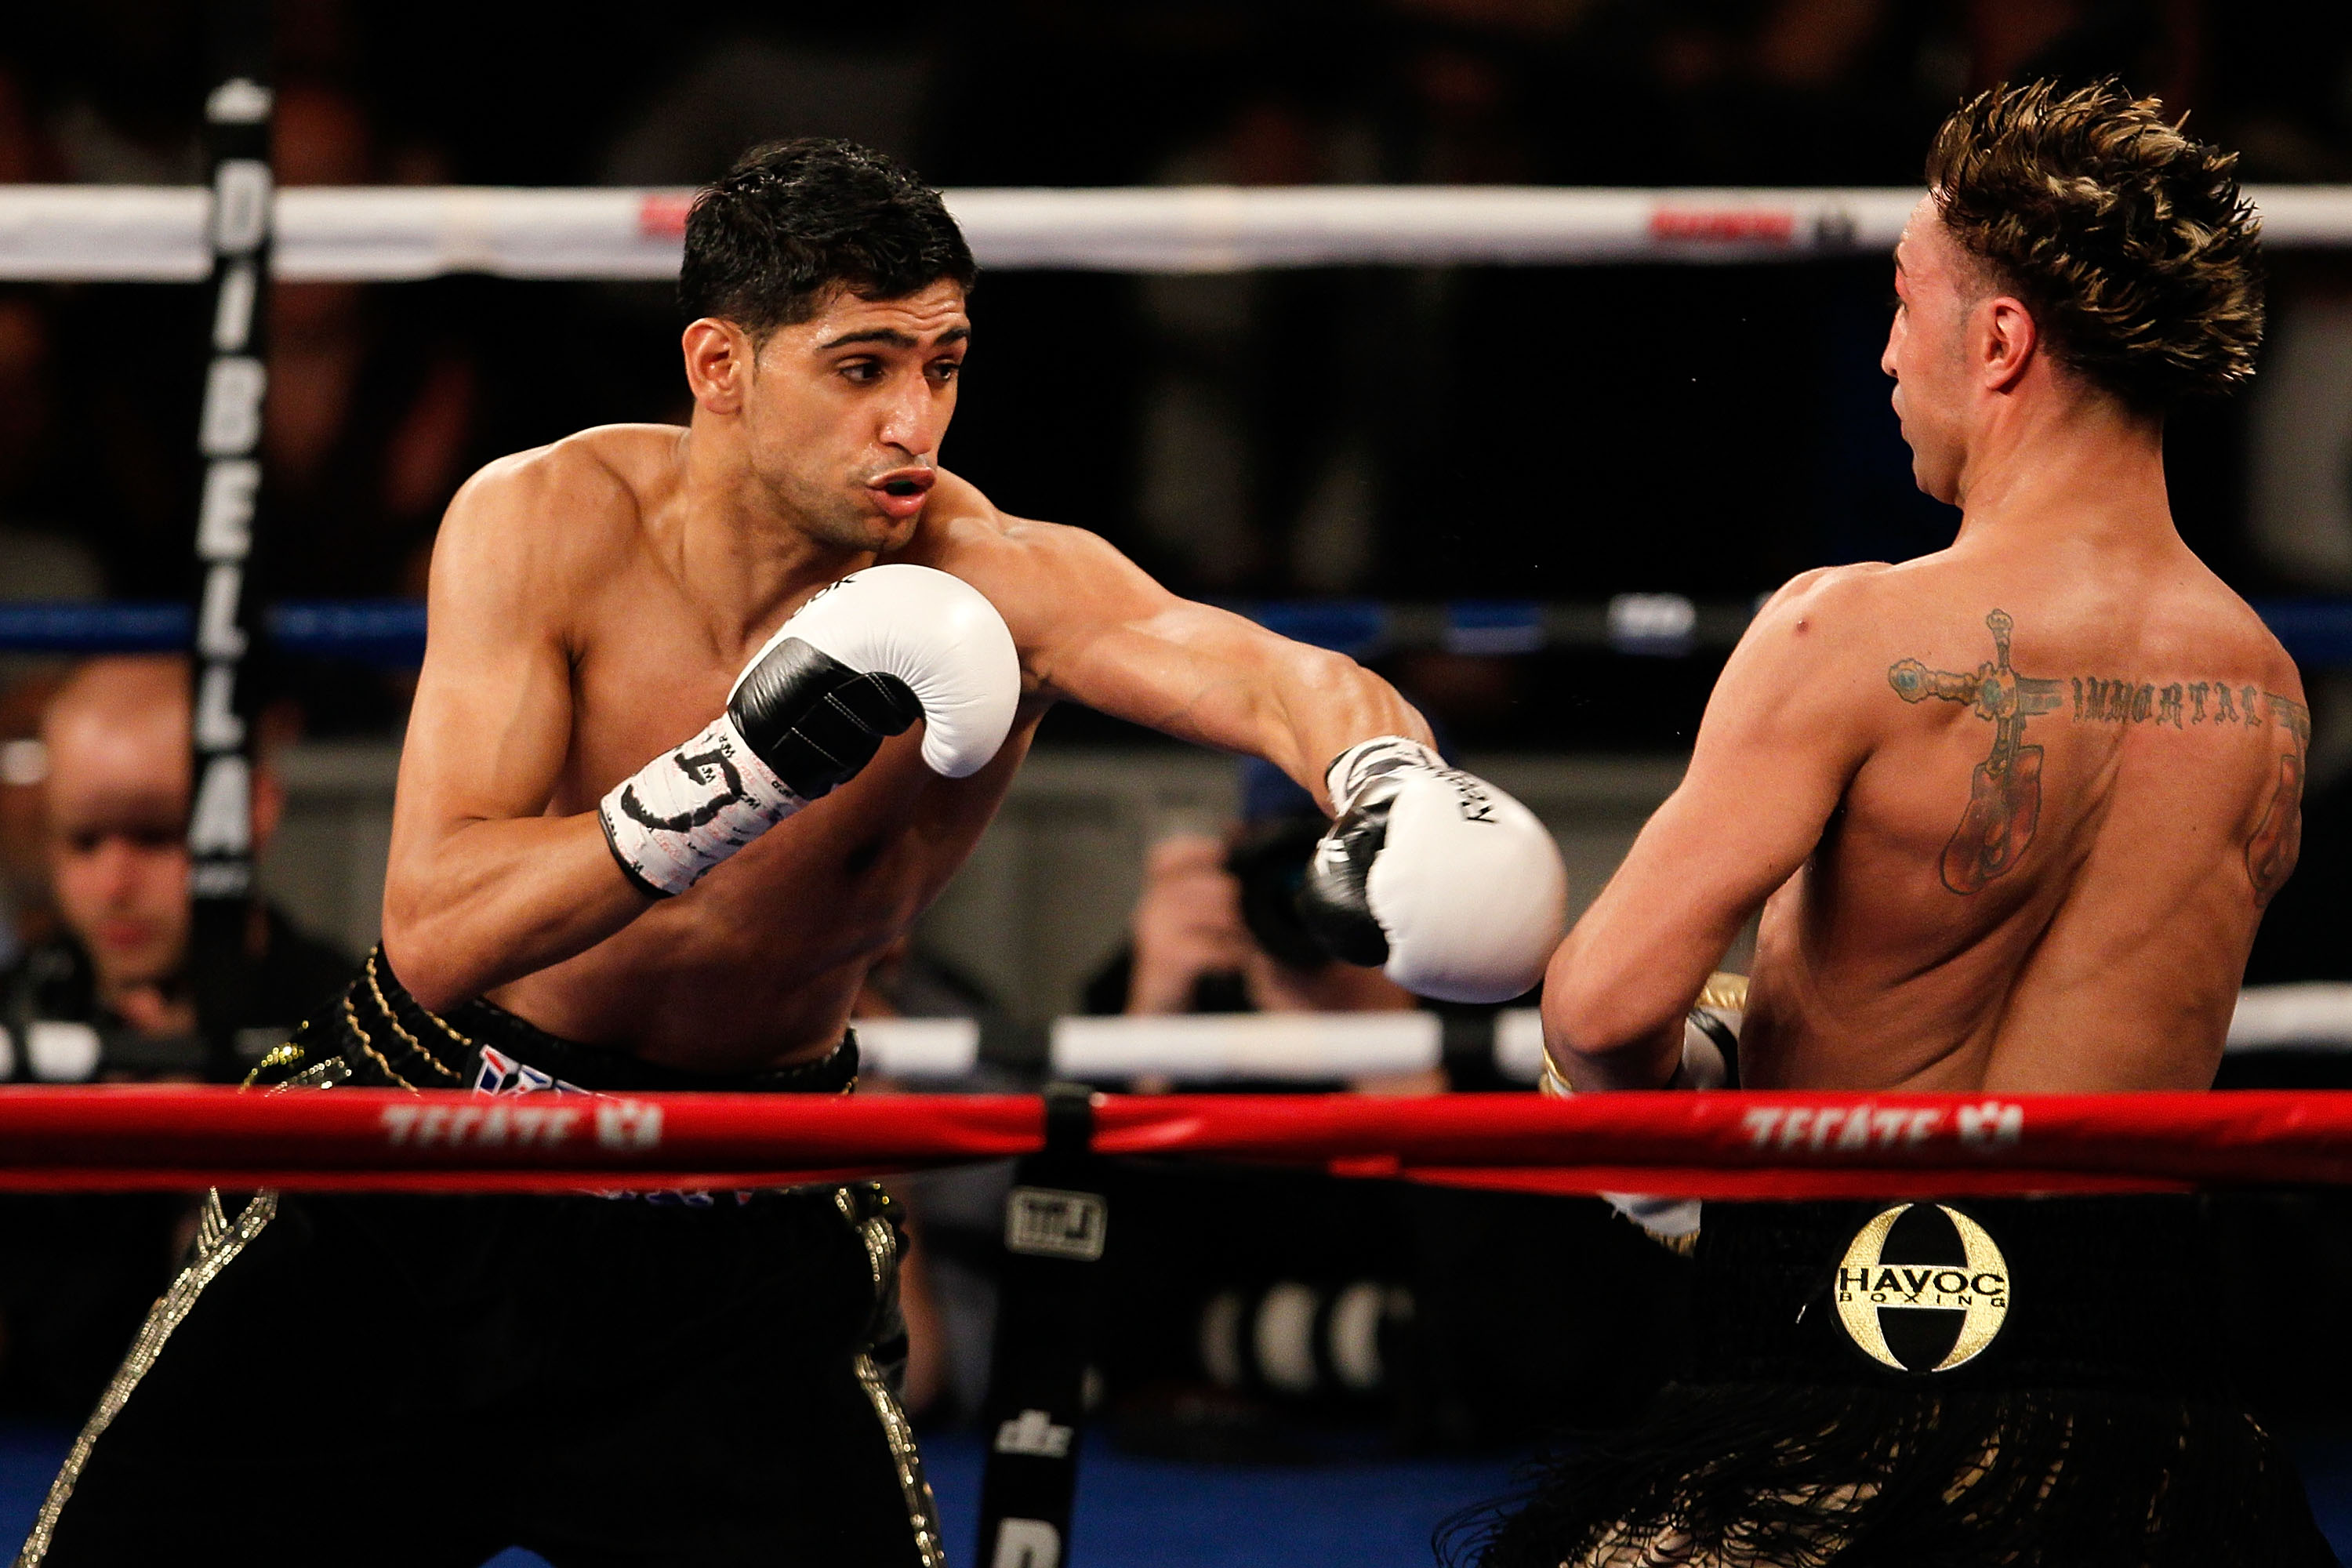 NEW YORK - MAY 15:  Amir Khan (L) of Great Britain hits Paulie Malignaggi during the WBA light welterweight title fight at Madison Square Garden on May 15, 2010 in New York City.  (Photo by Chris Trotman/Getty Images)